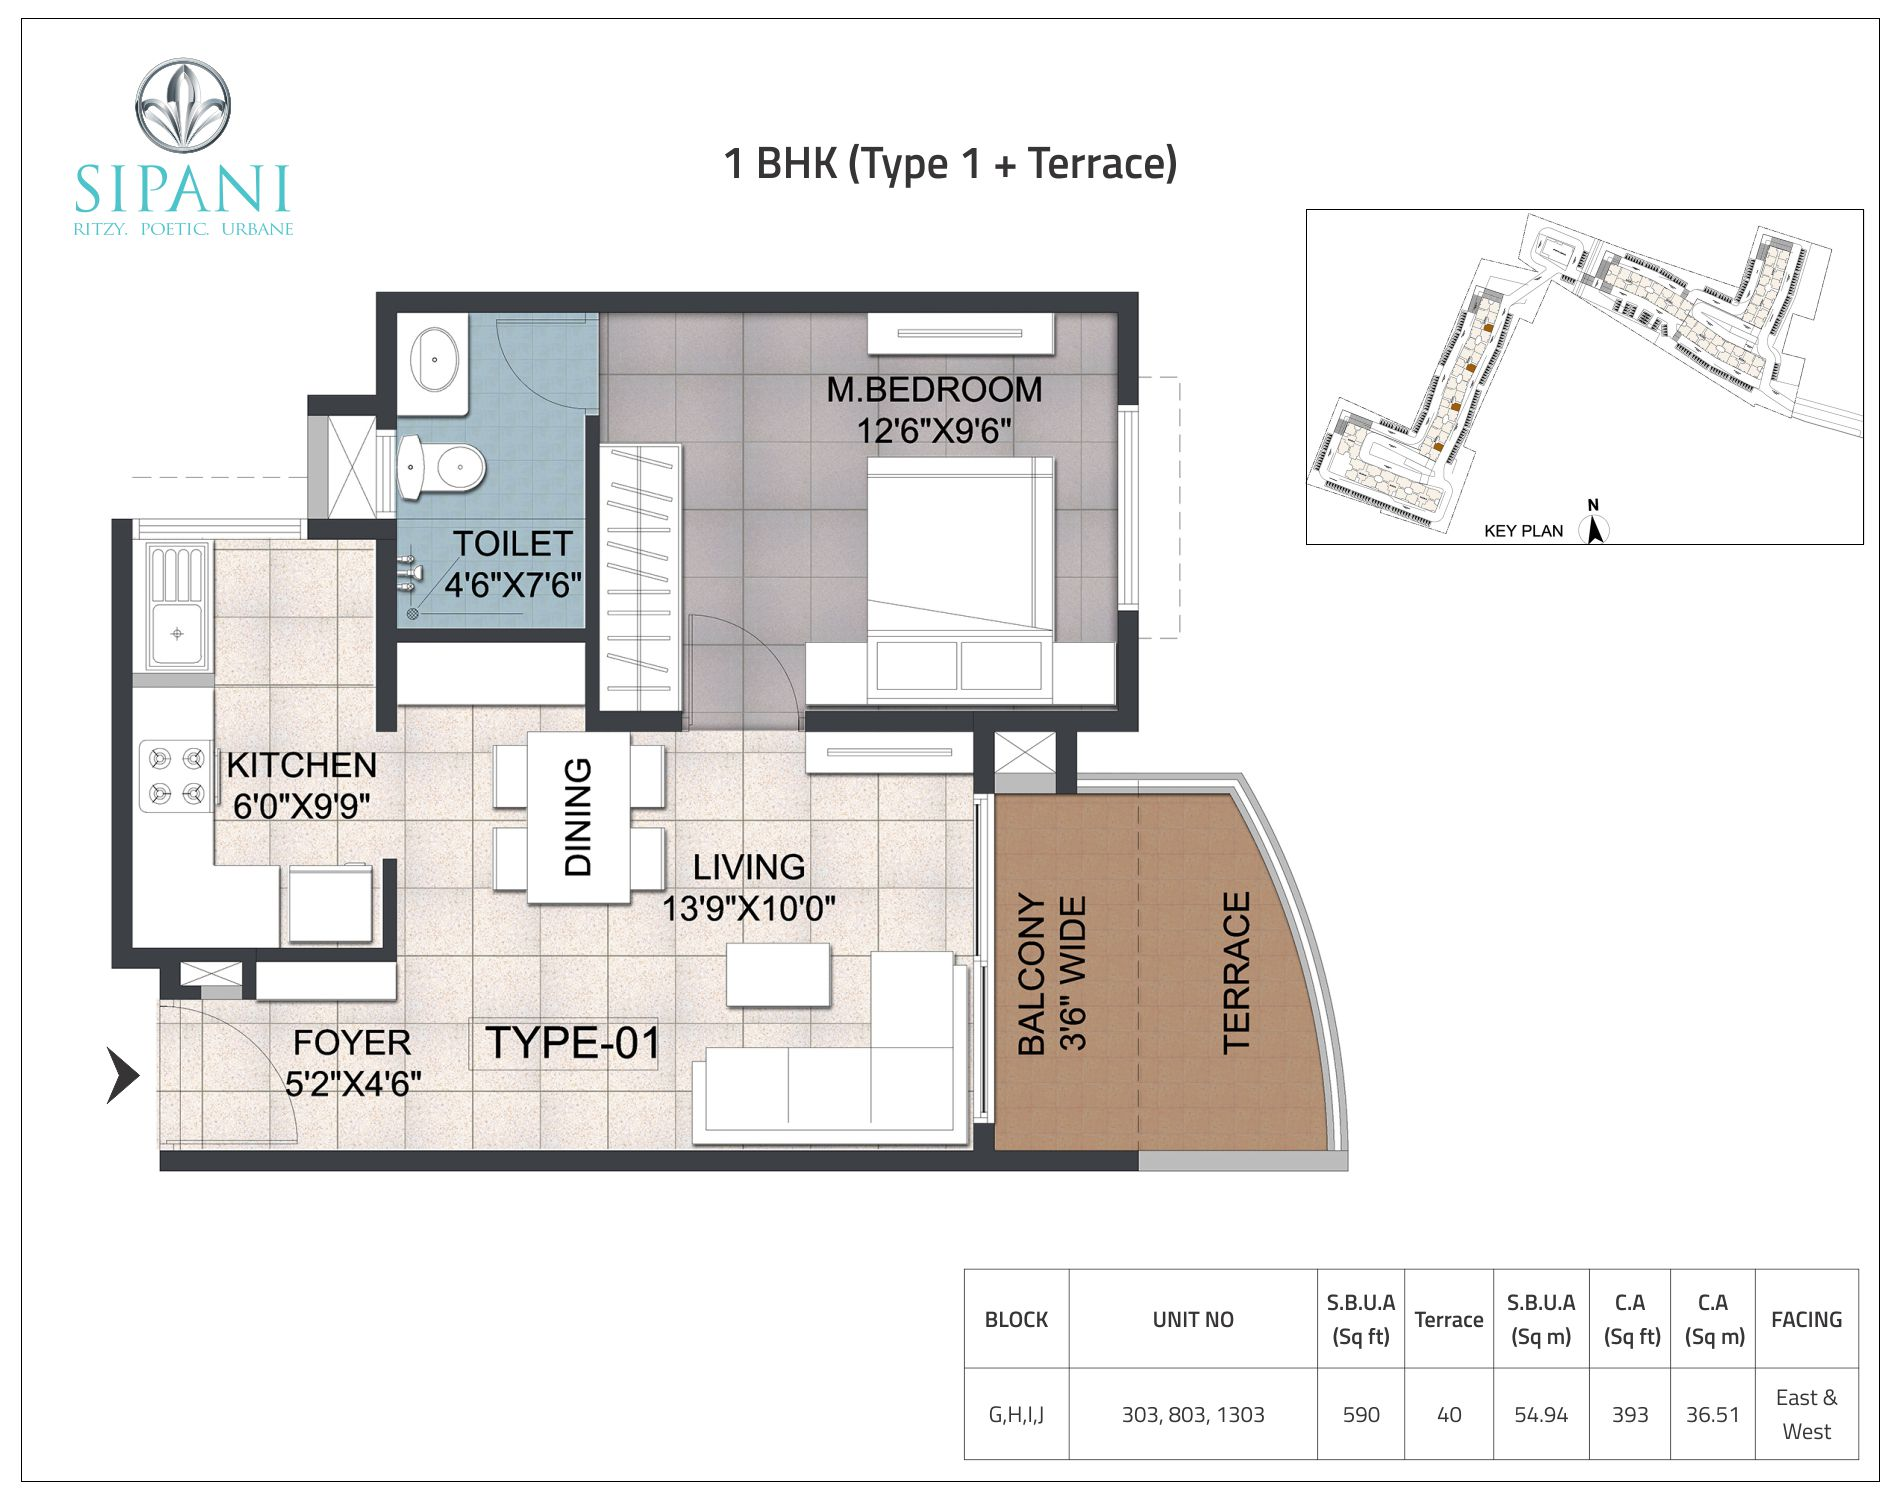 1_BHK_(Type_1+Terrace)1